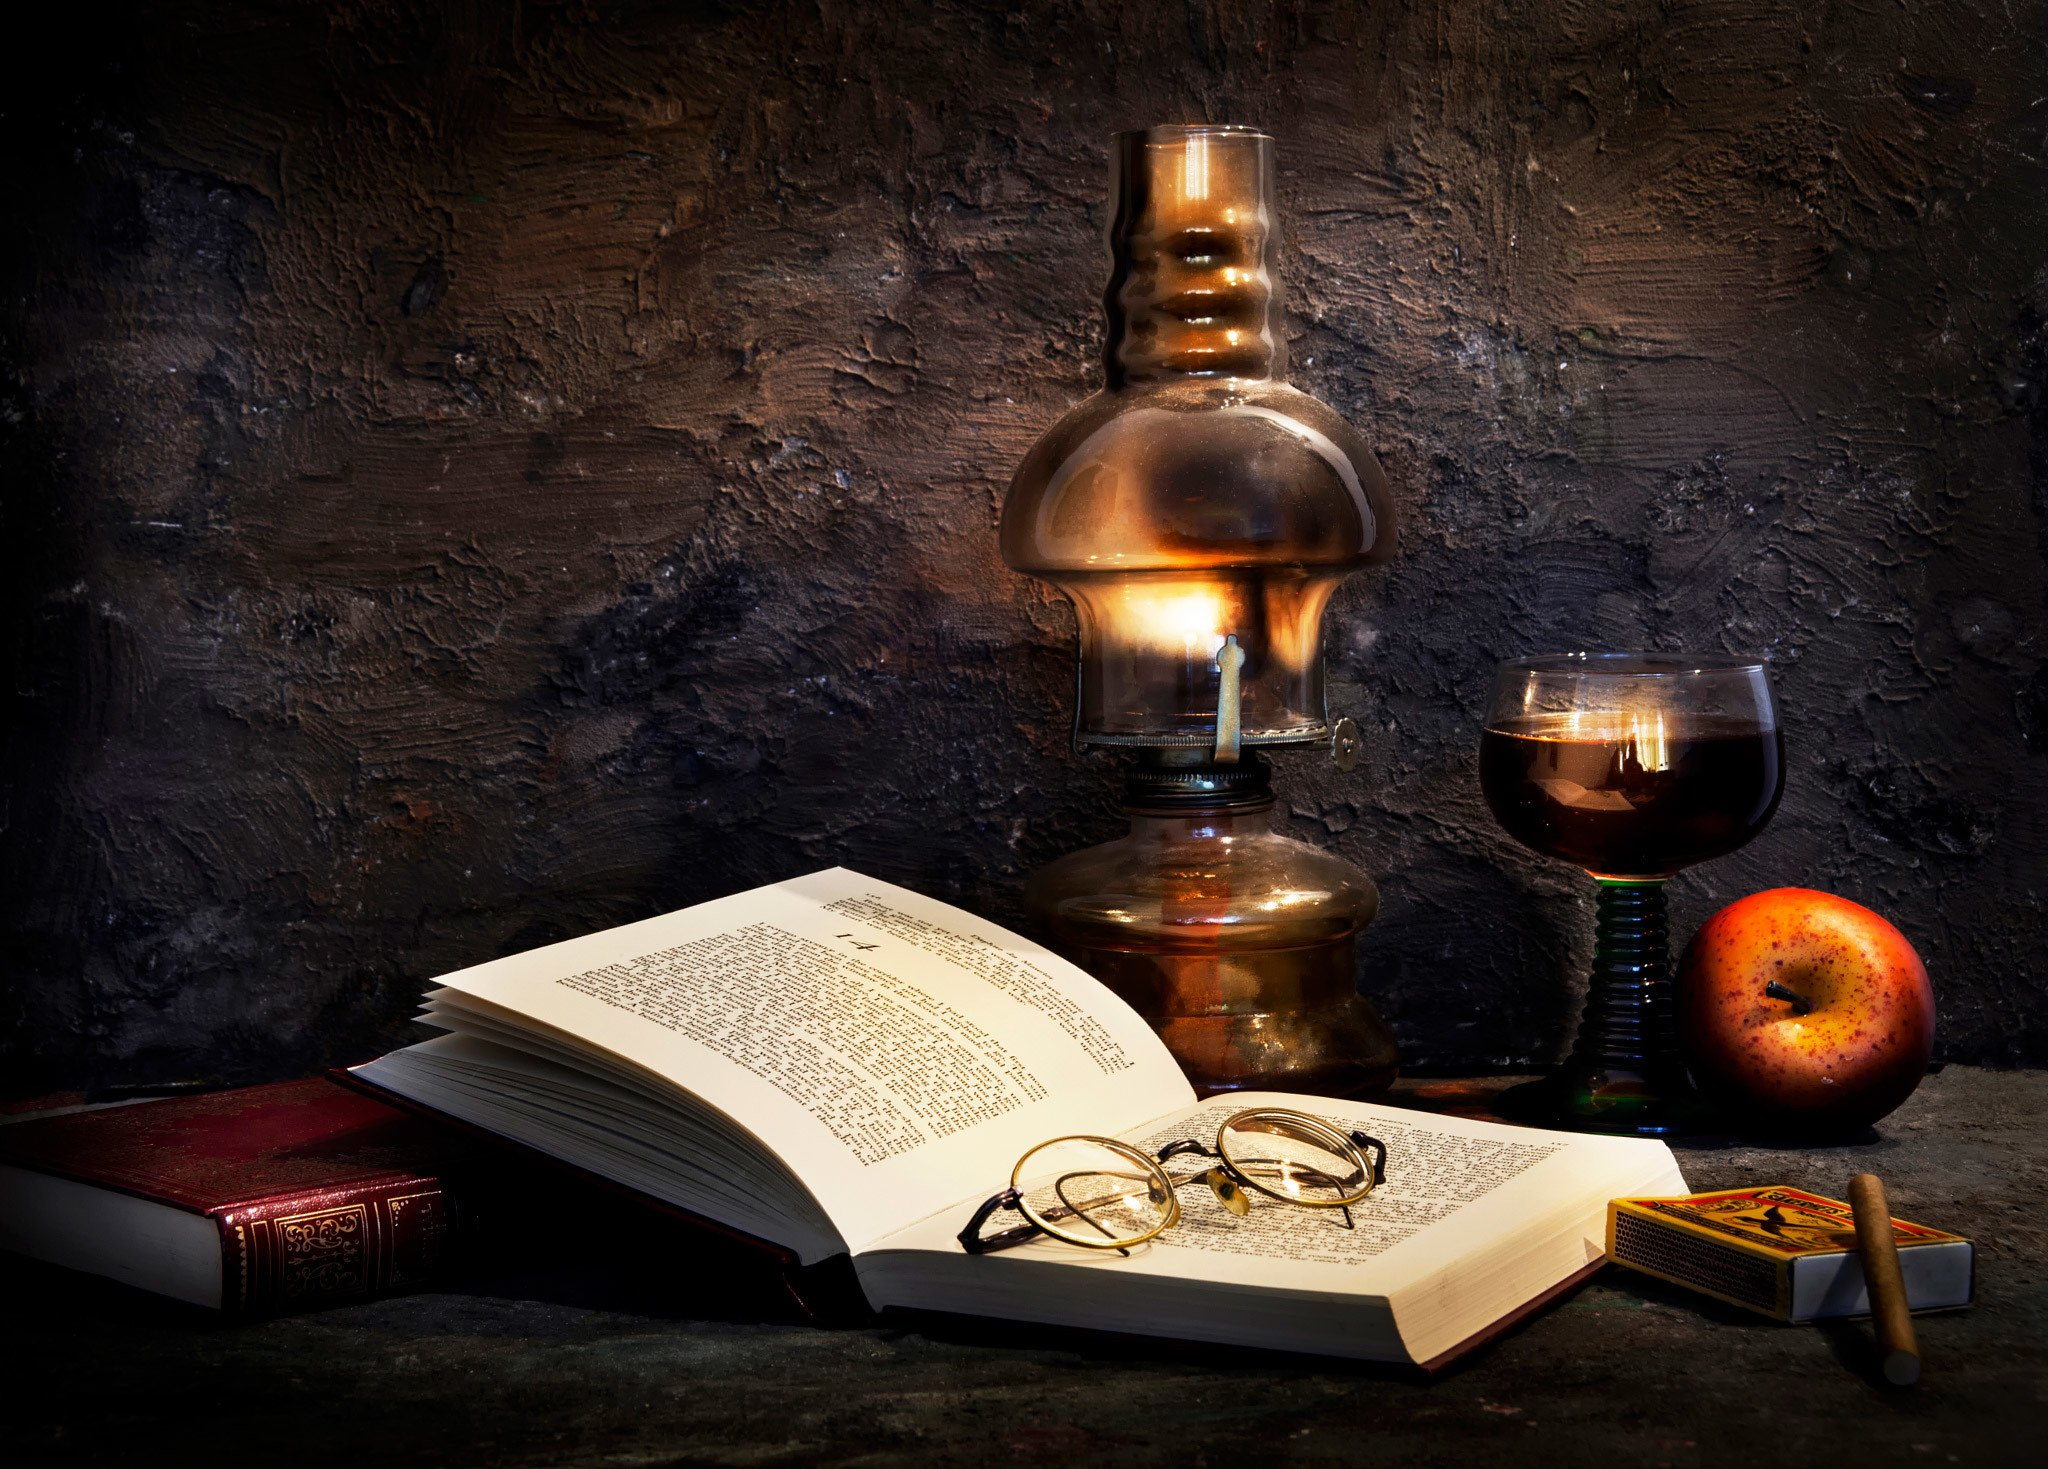 Still Life Old Book Retro Style Wallpaper 2048x1469